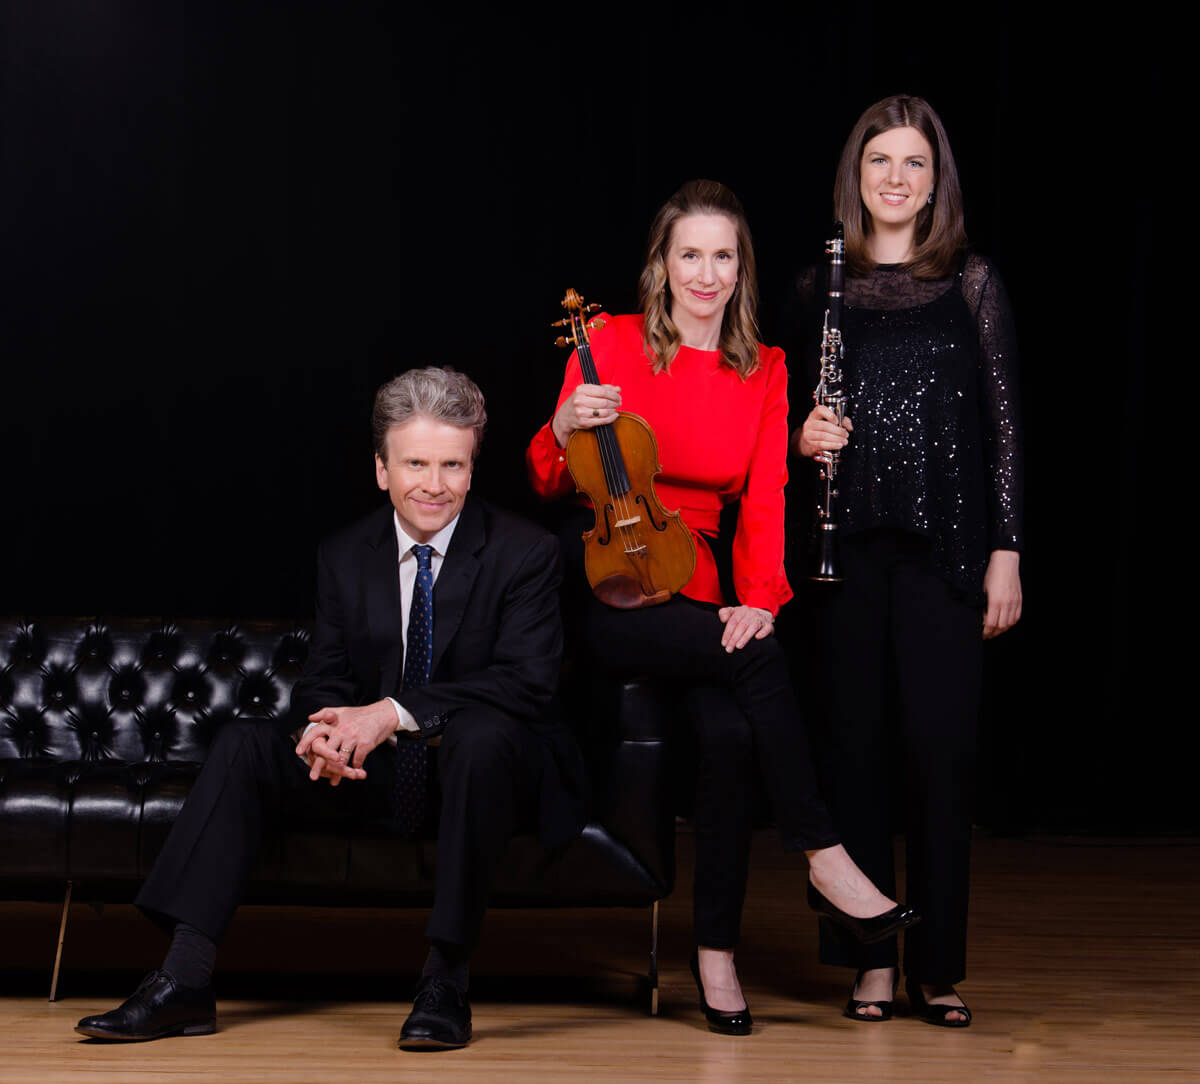 Christine Carter & Duo Concertante